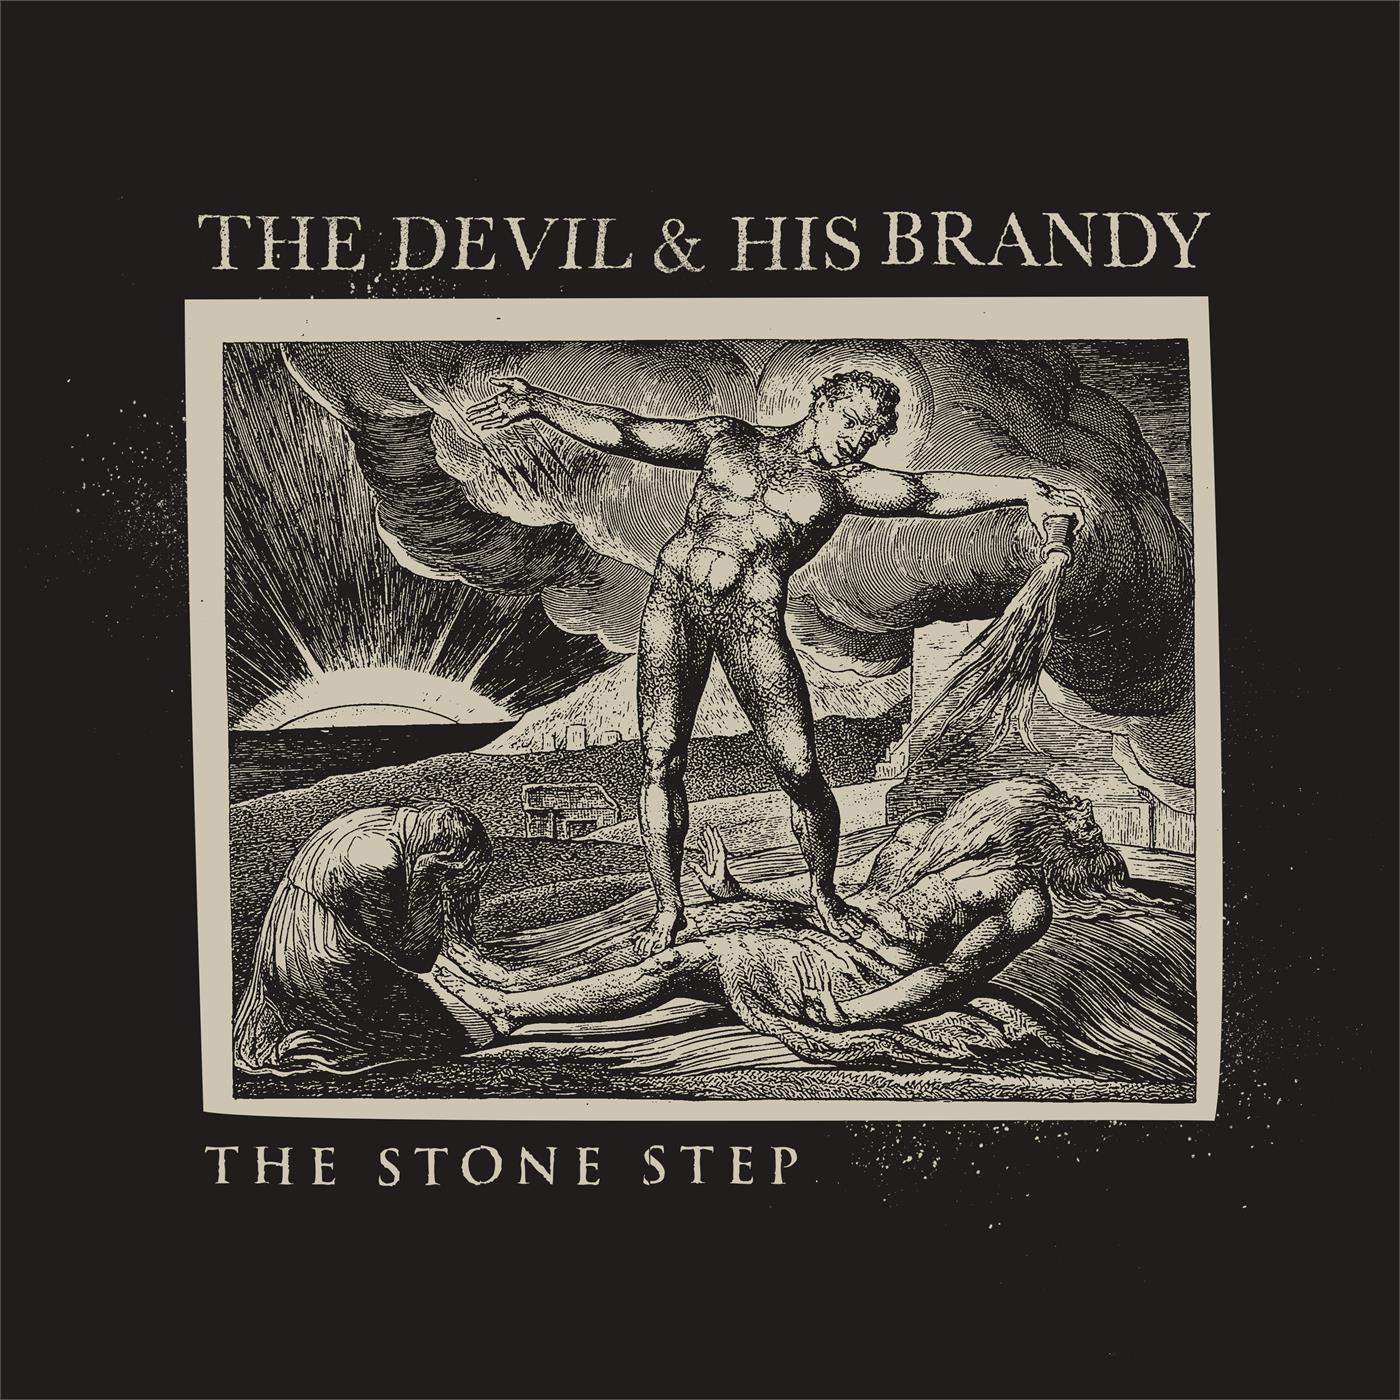 The Stone Step